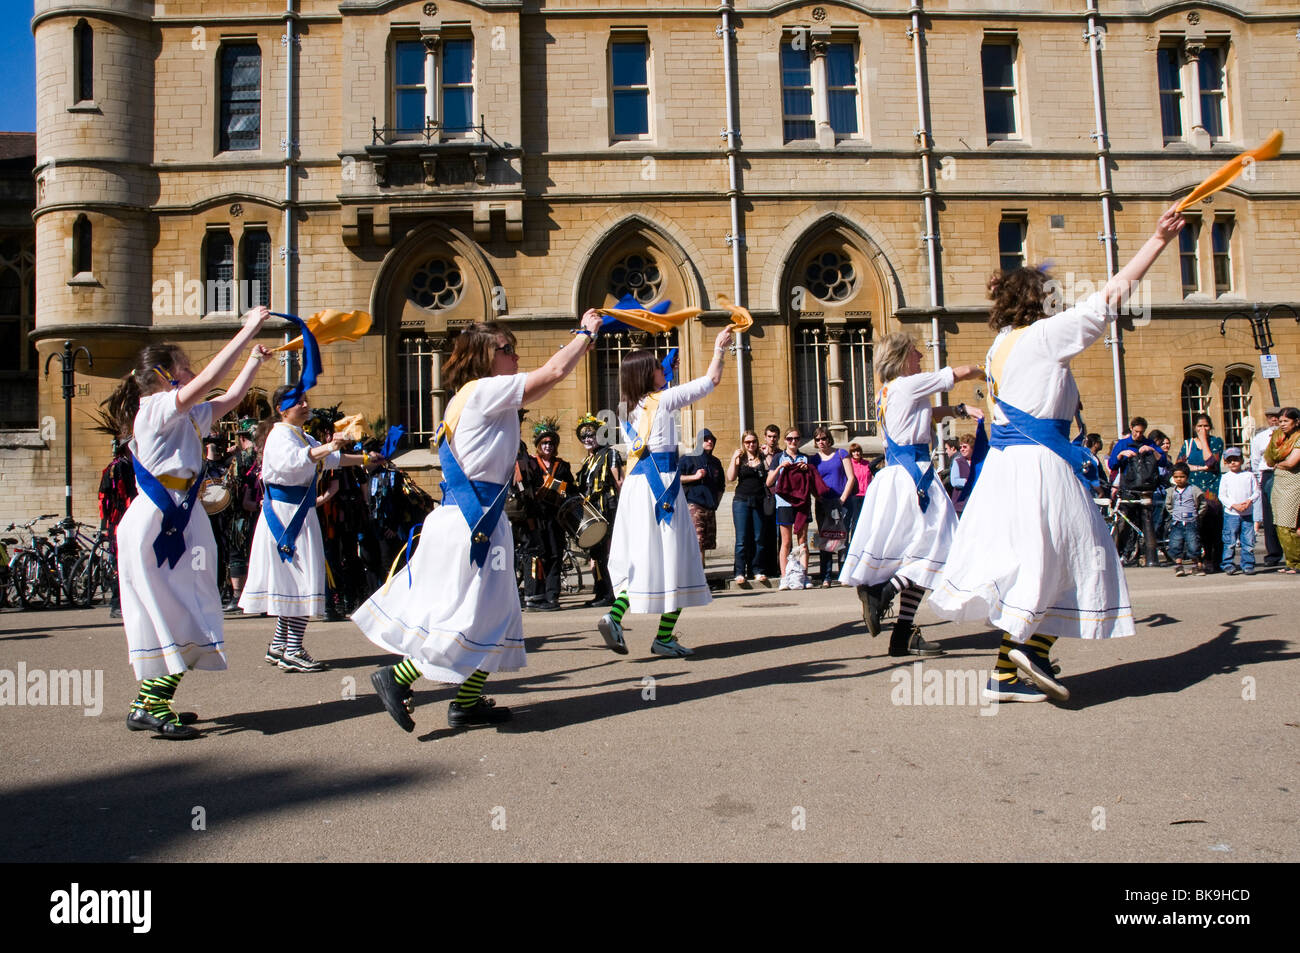 Morris dancers in action at the Oxford Folk Festival, dancing on Broad Street in front of Balliol college. - Stock Image